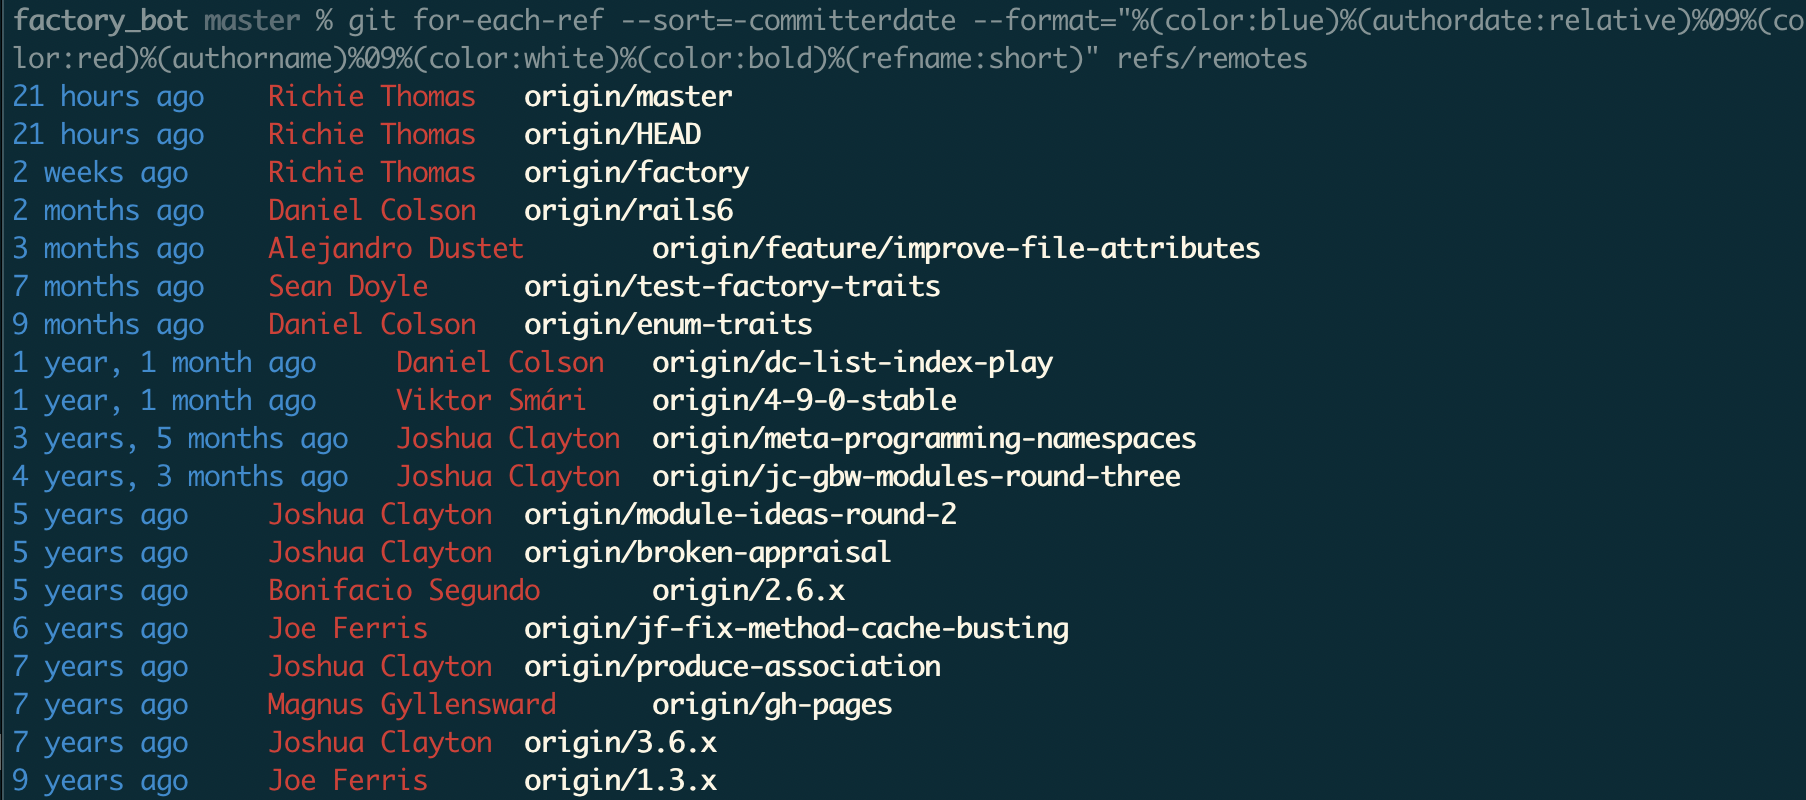 output of running git for-each-ref refs/remotes with --format and --sort options